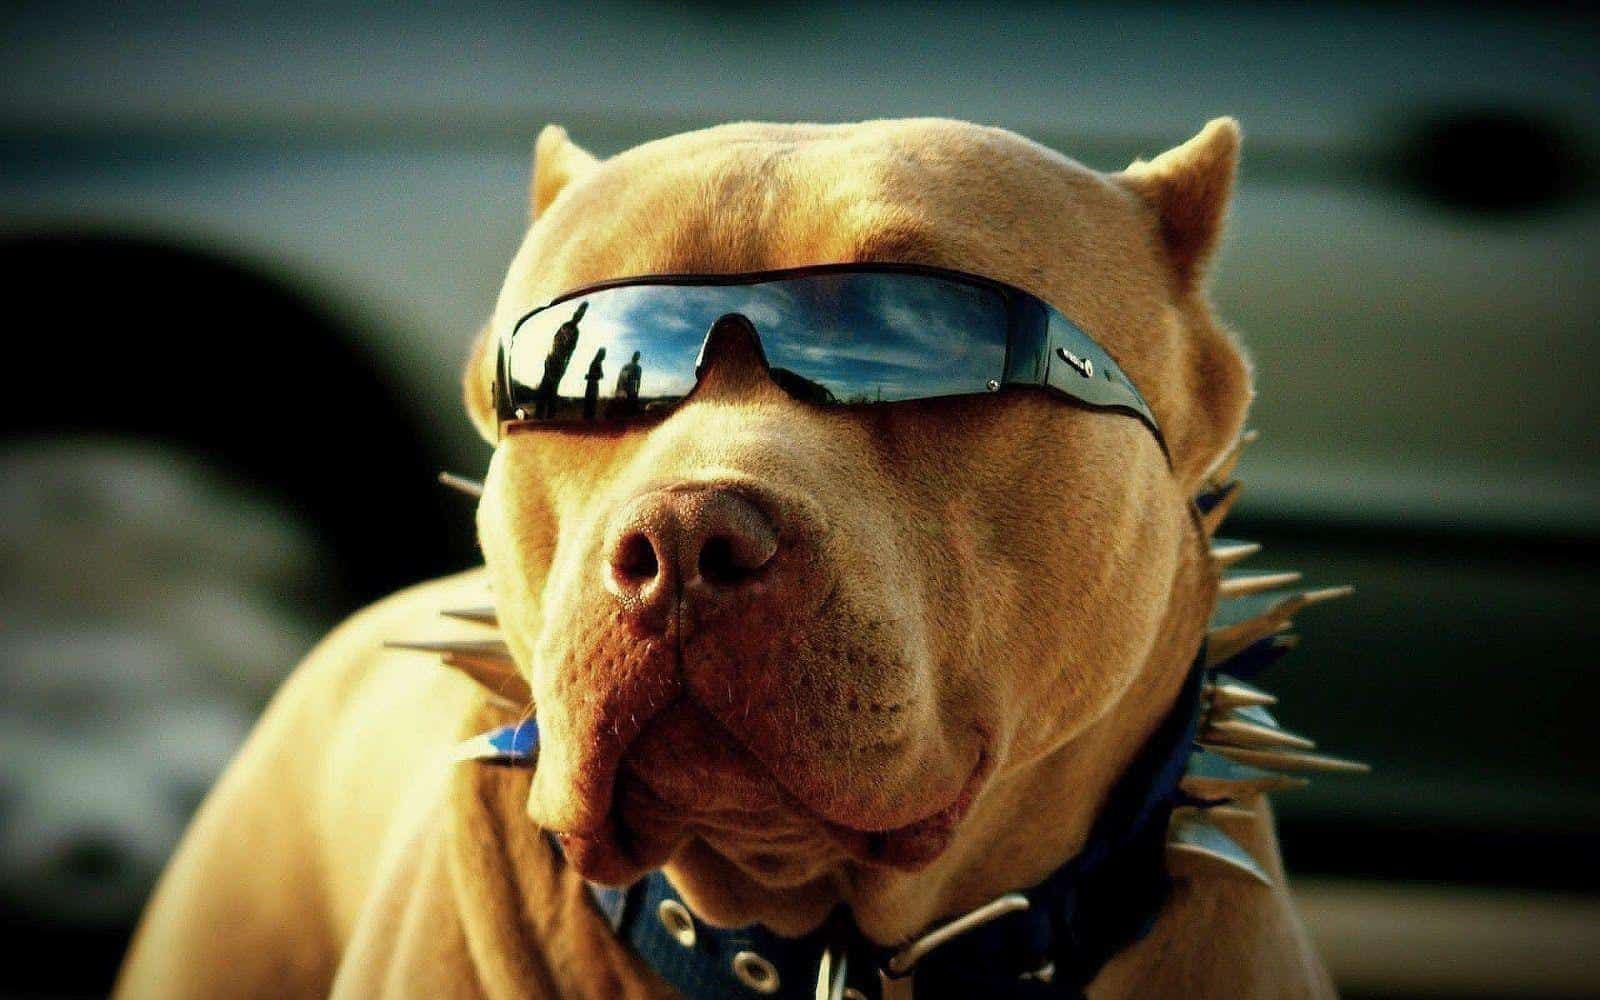 Cool Wallpapers Of Dogs Http Jazzwallpaper Com Cool Wallpapers Of Dogs Hd Wallpapers Cute Dog Wallpaper Pitbulls Dog Wallpaper